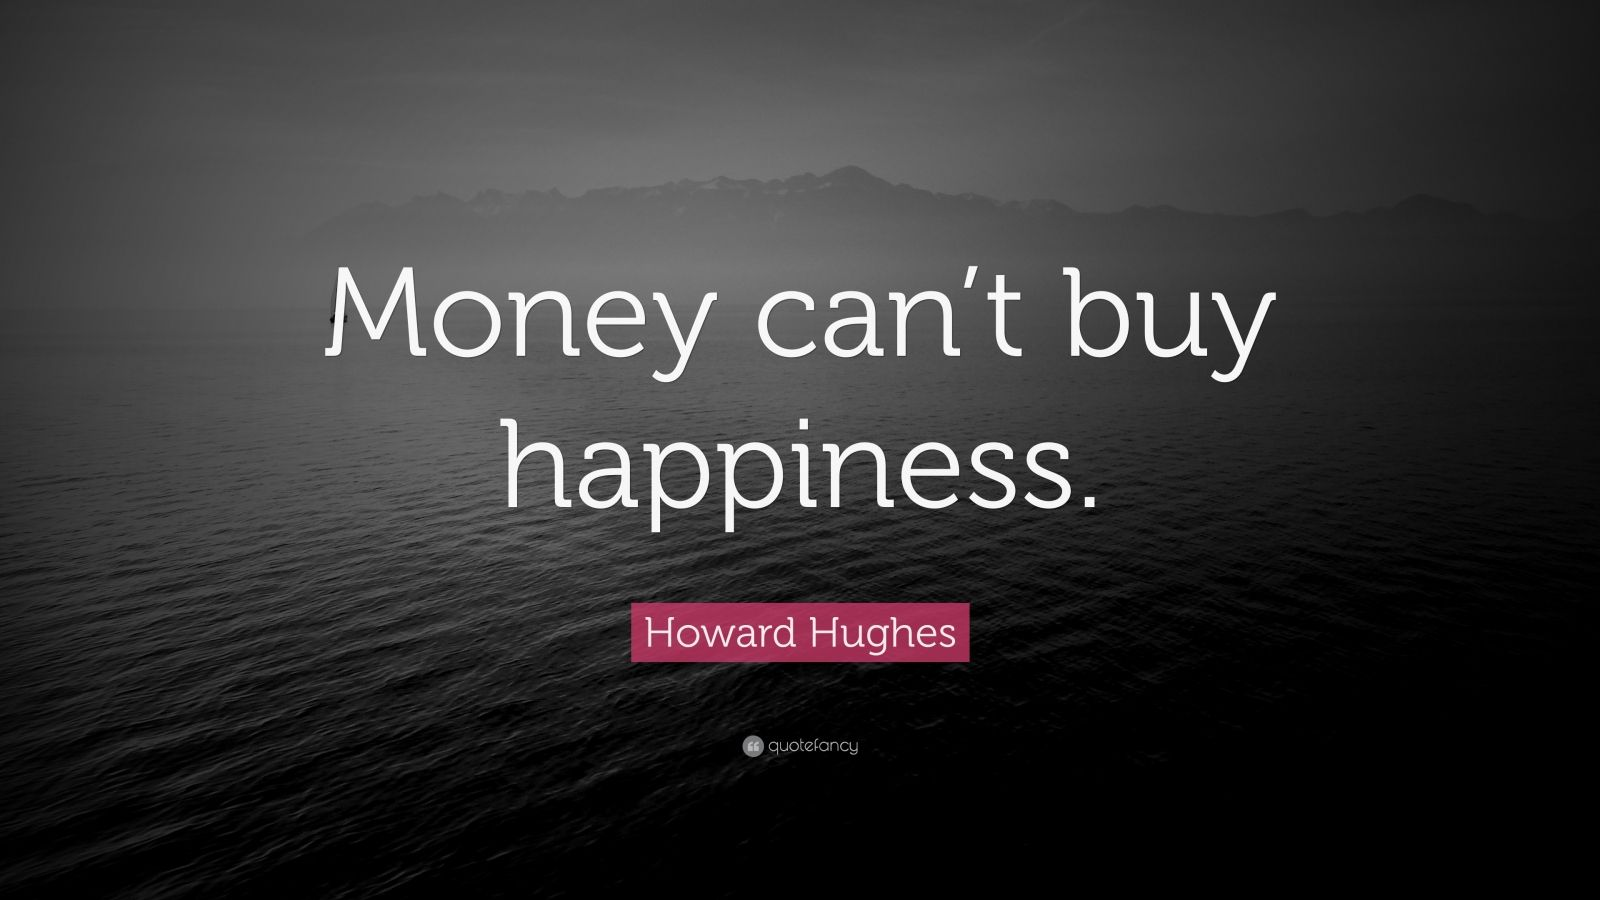 money doesnt buy happiness in edwin arlington If money doesn't make you happy, then you probably aren't spending it right buy less insurance the initial gains in happiness when one purchases a good typically outweigh the sadness that follows its loss, according to recent research.